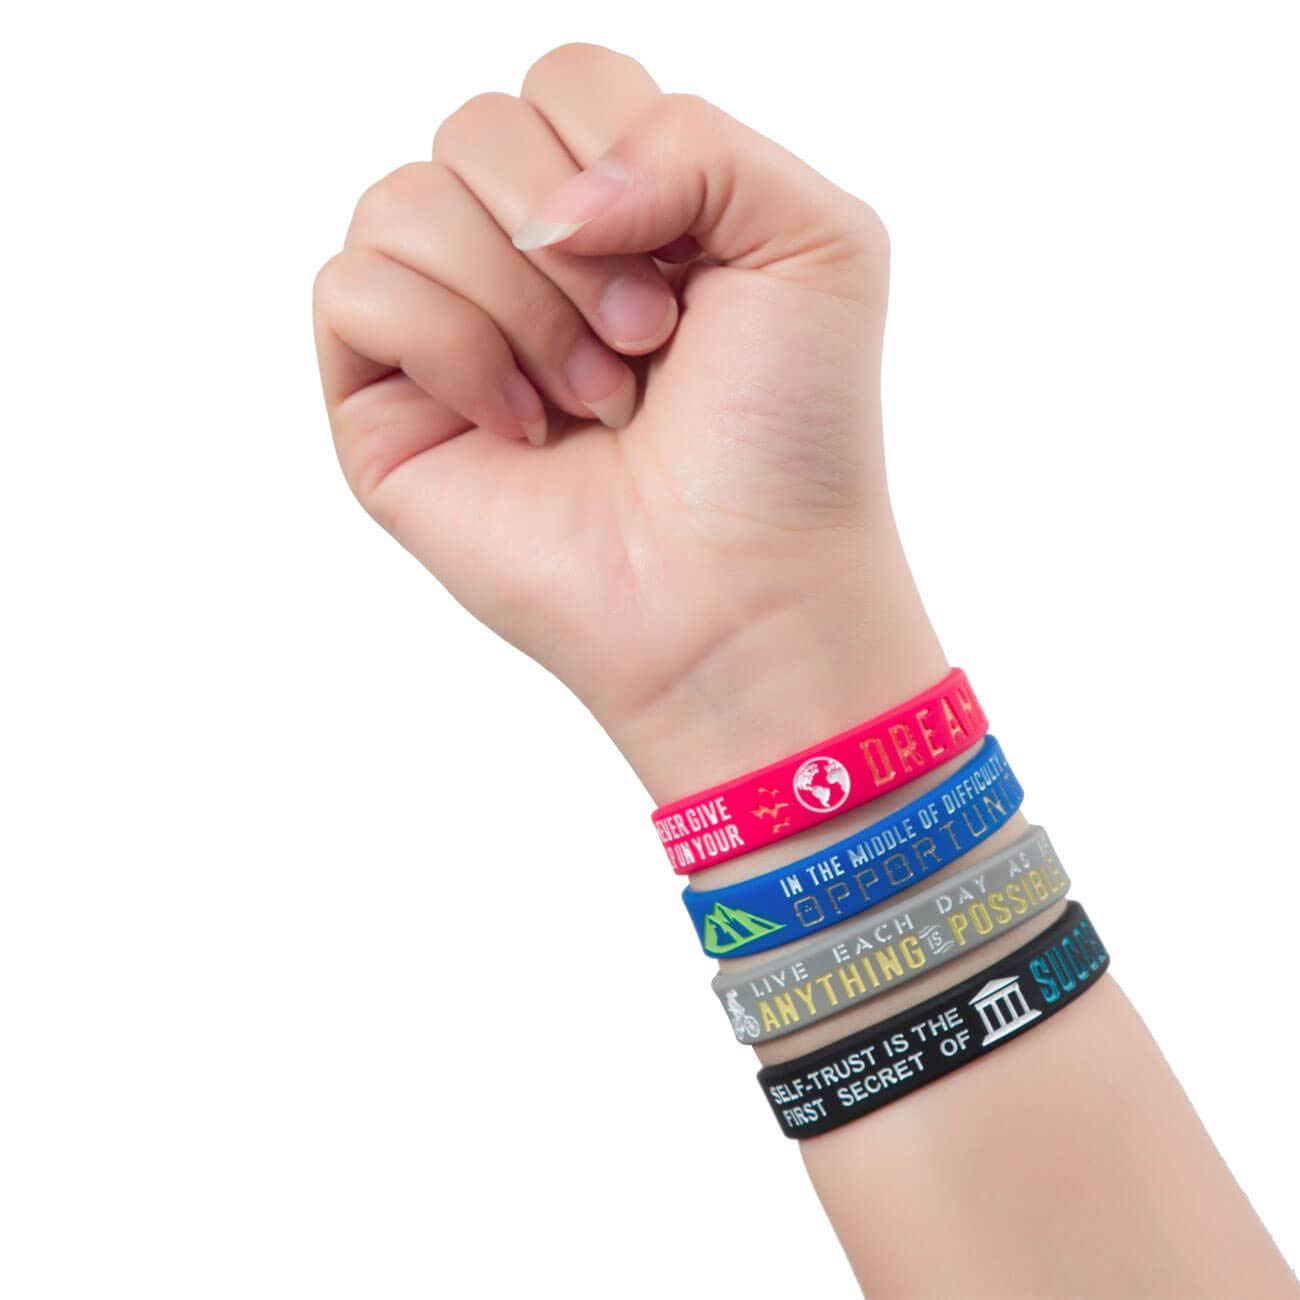 Motivational Wristbands for Athletes Men Sainstone Inspirational Bracelets Women and Teens Sports Fan Wristbands Gifts Opportunity for Athletes Anything is Possible Dreams Success